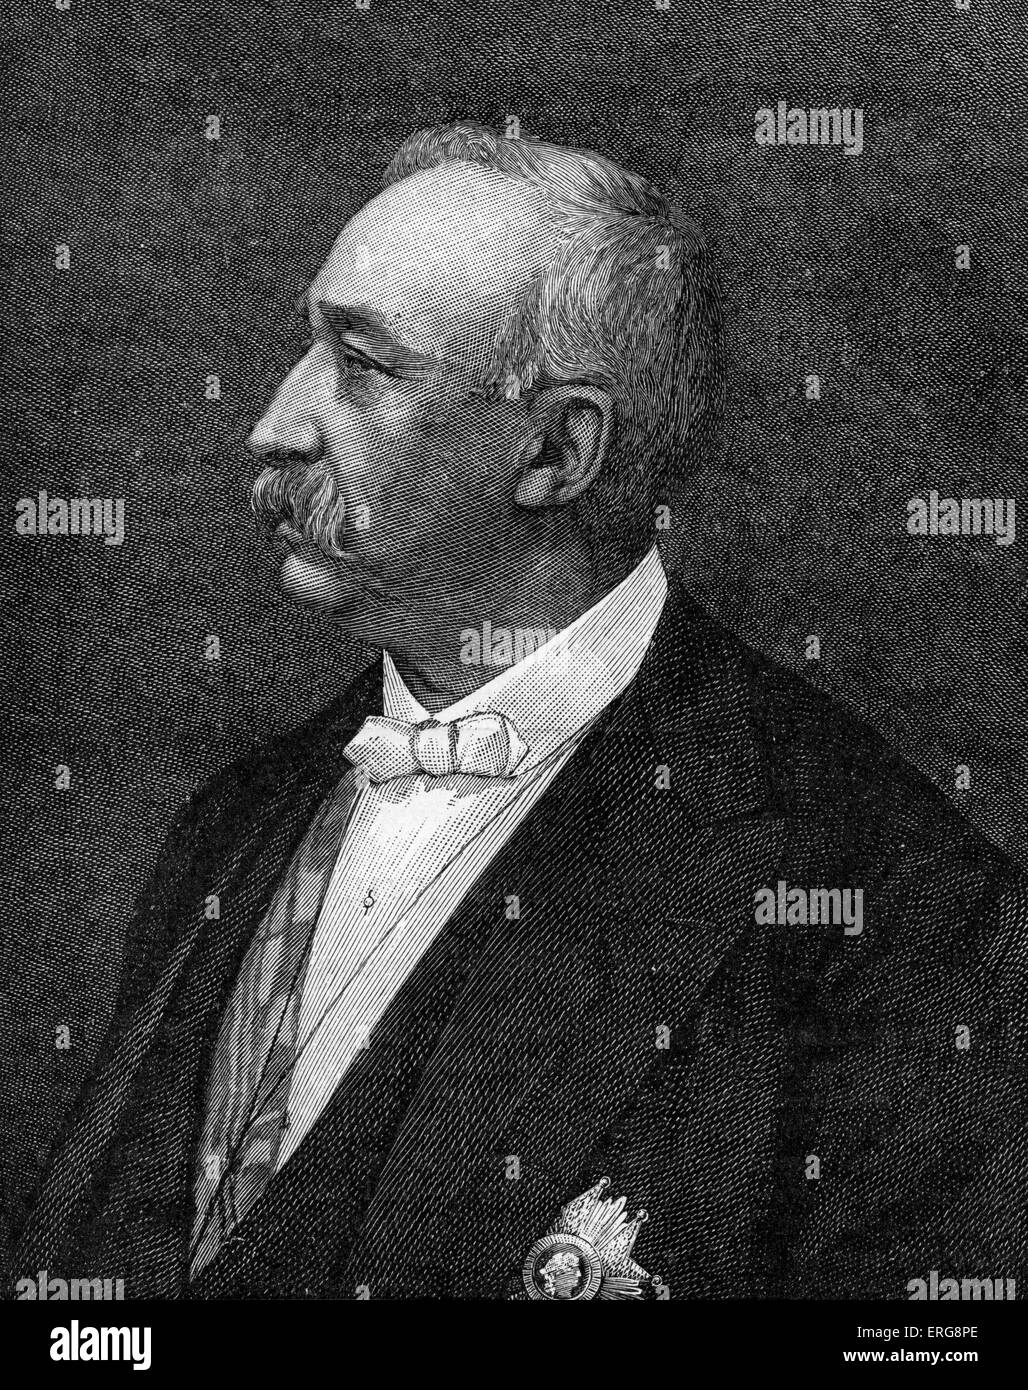 President Faure, portrait.    Félix François Faure, French President from 1895 - 1899, b. January 1841 - Stock Image